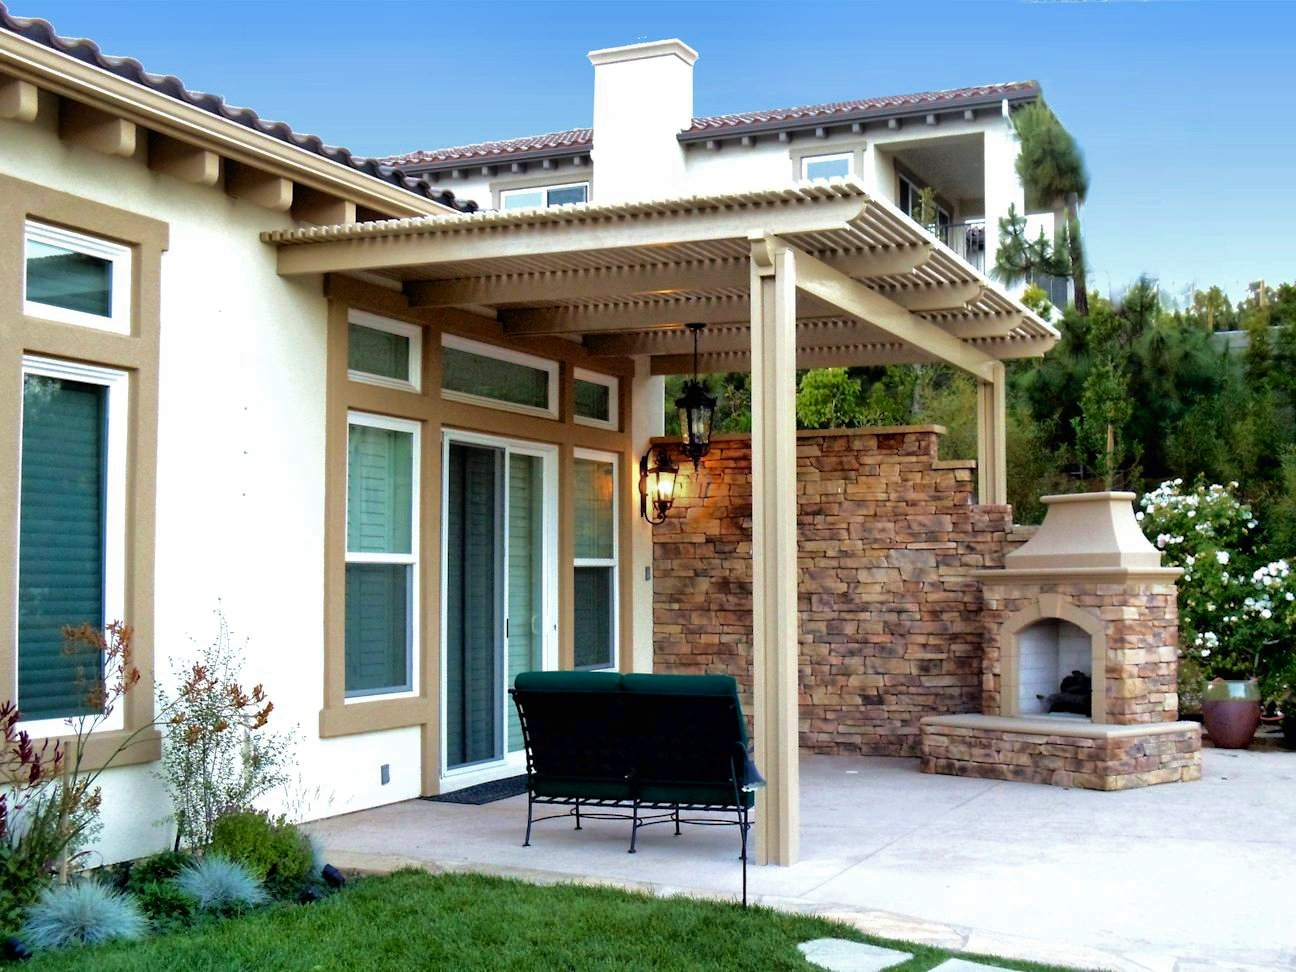 Picture of: Small retractable patio covers